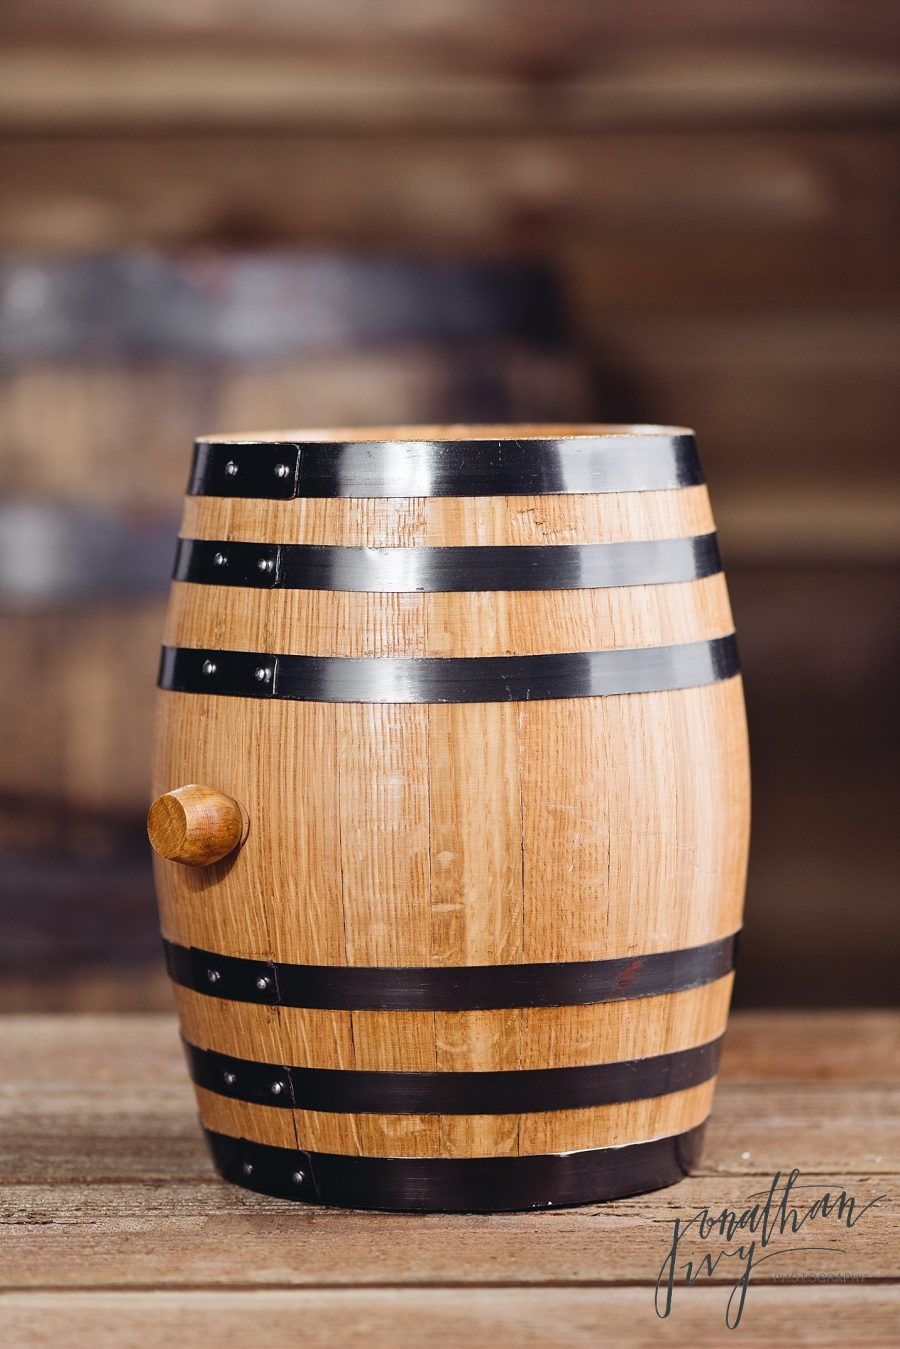 Product Photographer in Houston - Deep South Barrels